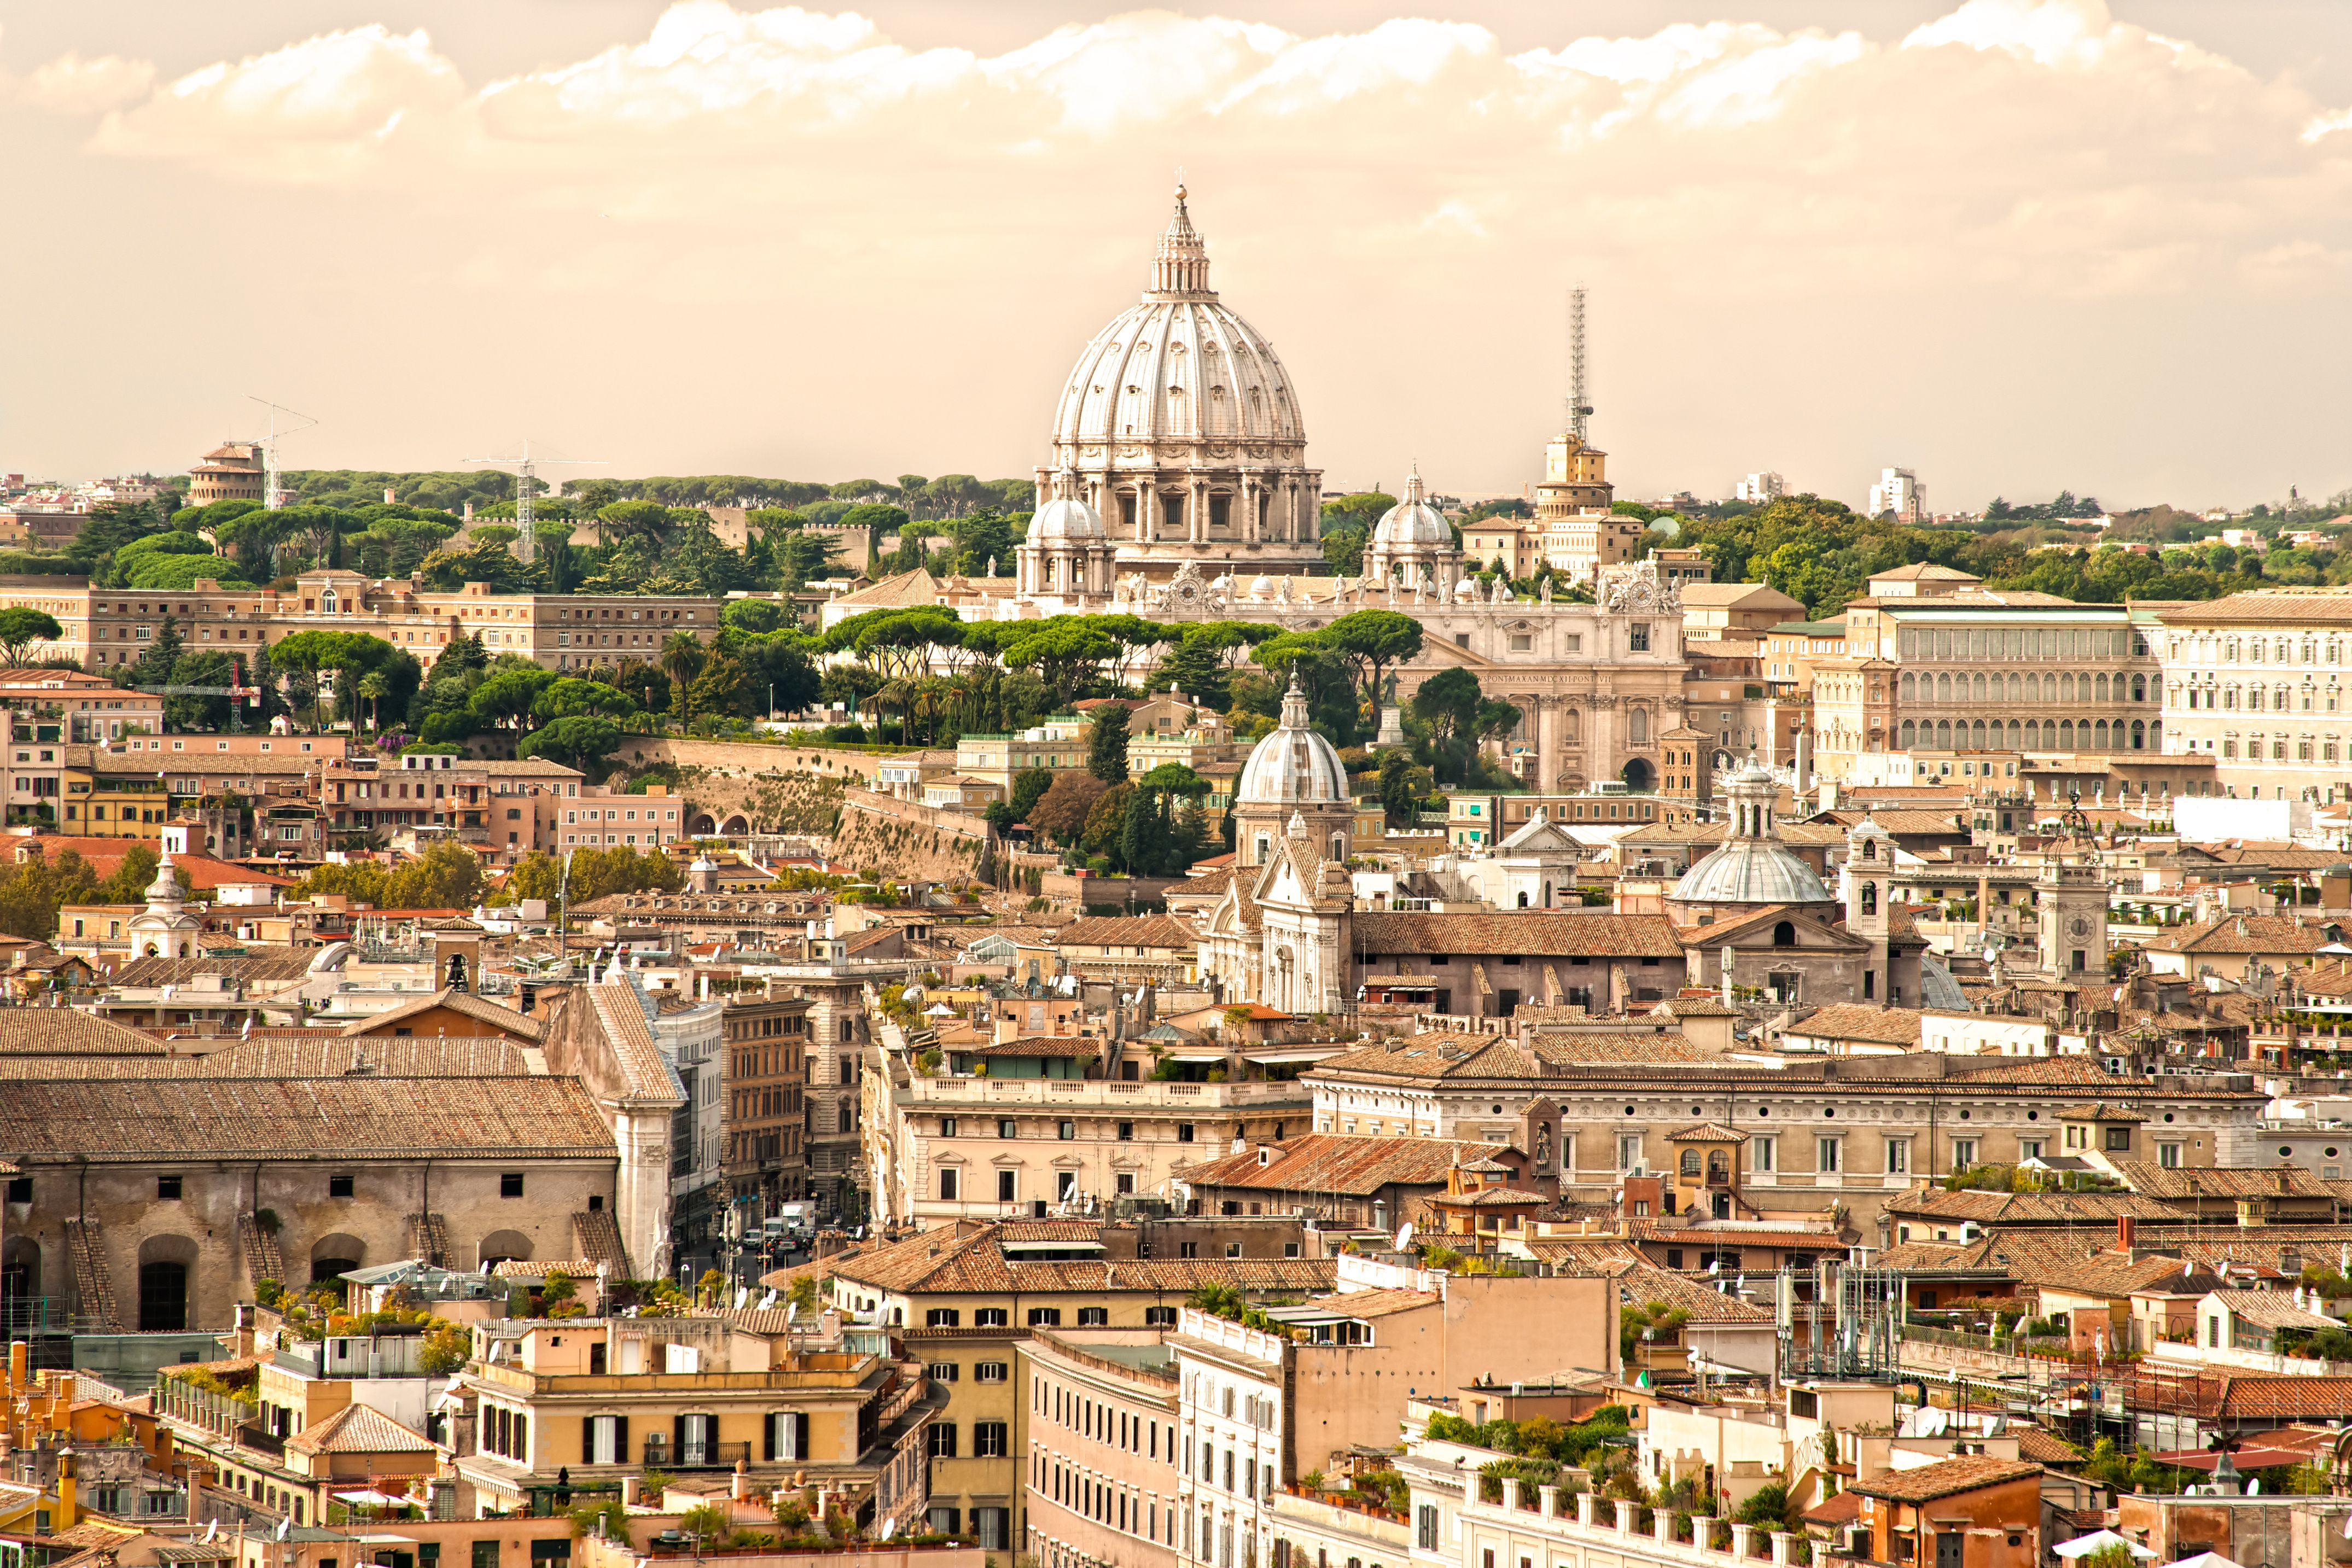 View of  San Peter basilica, Rome, Italy.